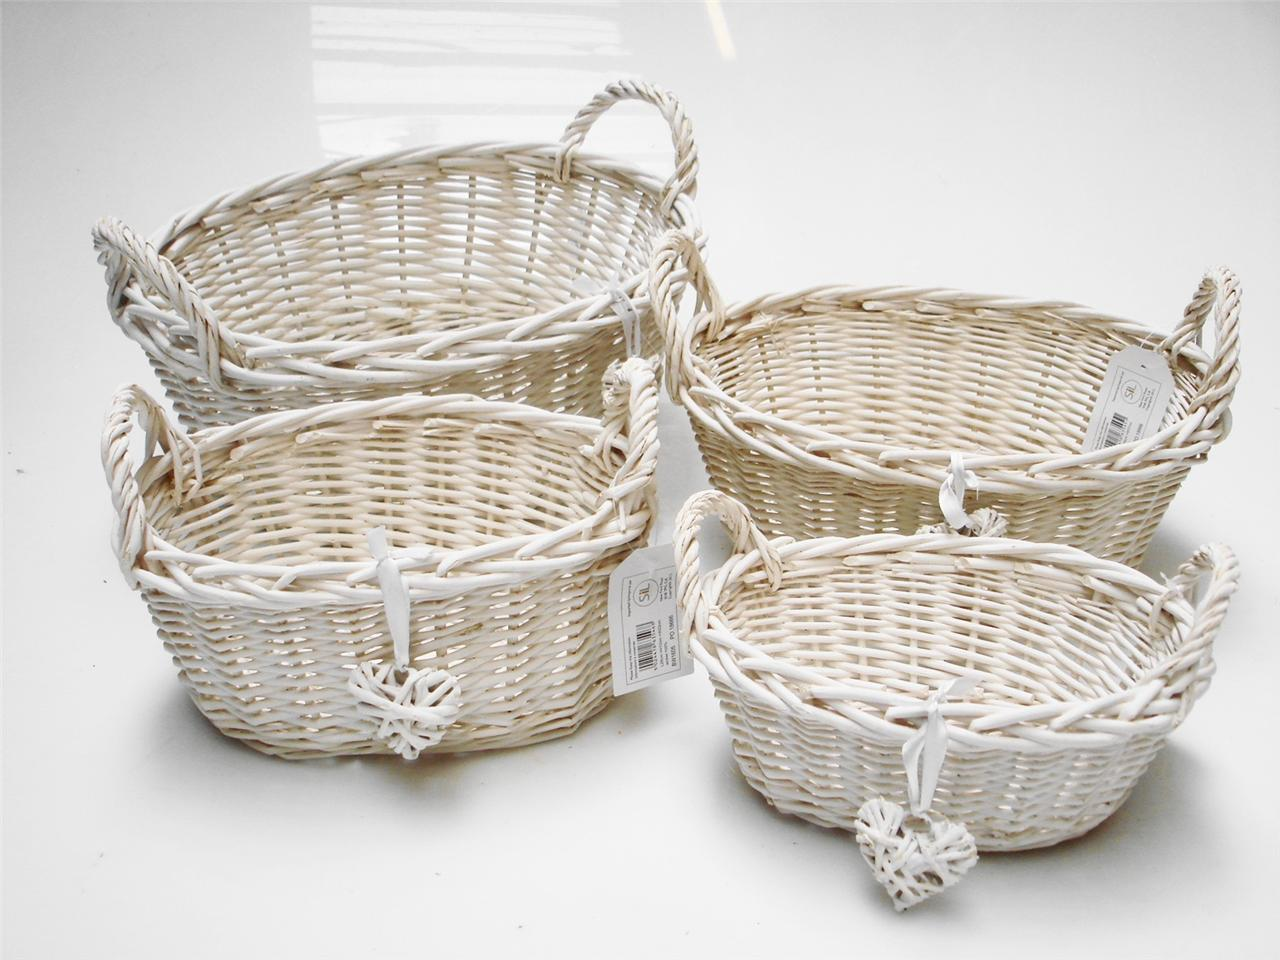 Oval White French Shabby Chic Wicker Kitchen Crafts Bathroom Storage Basket Ebay